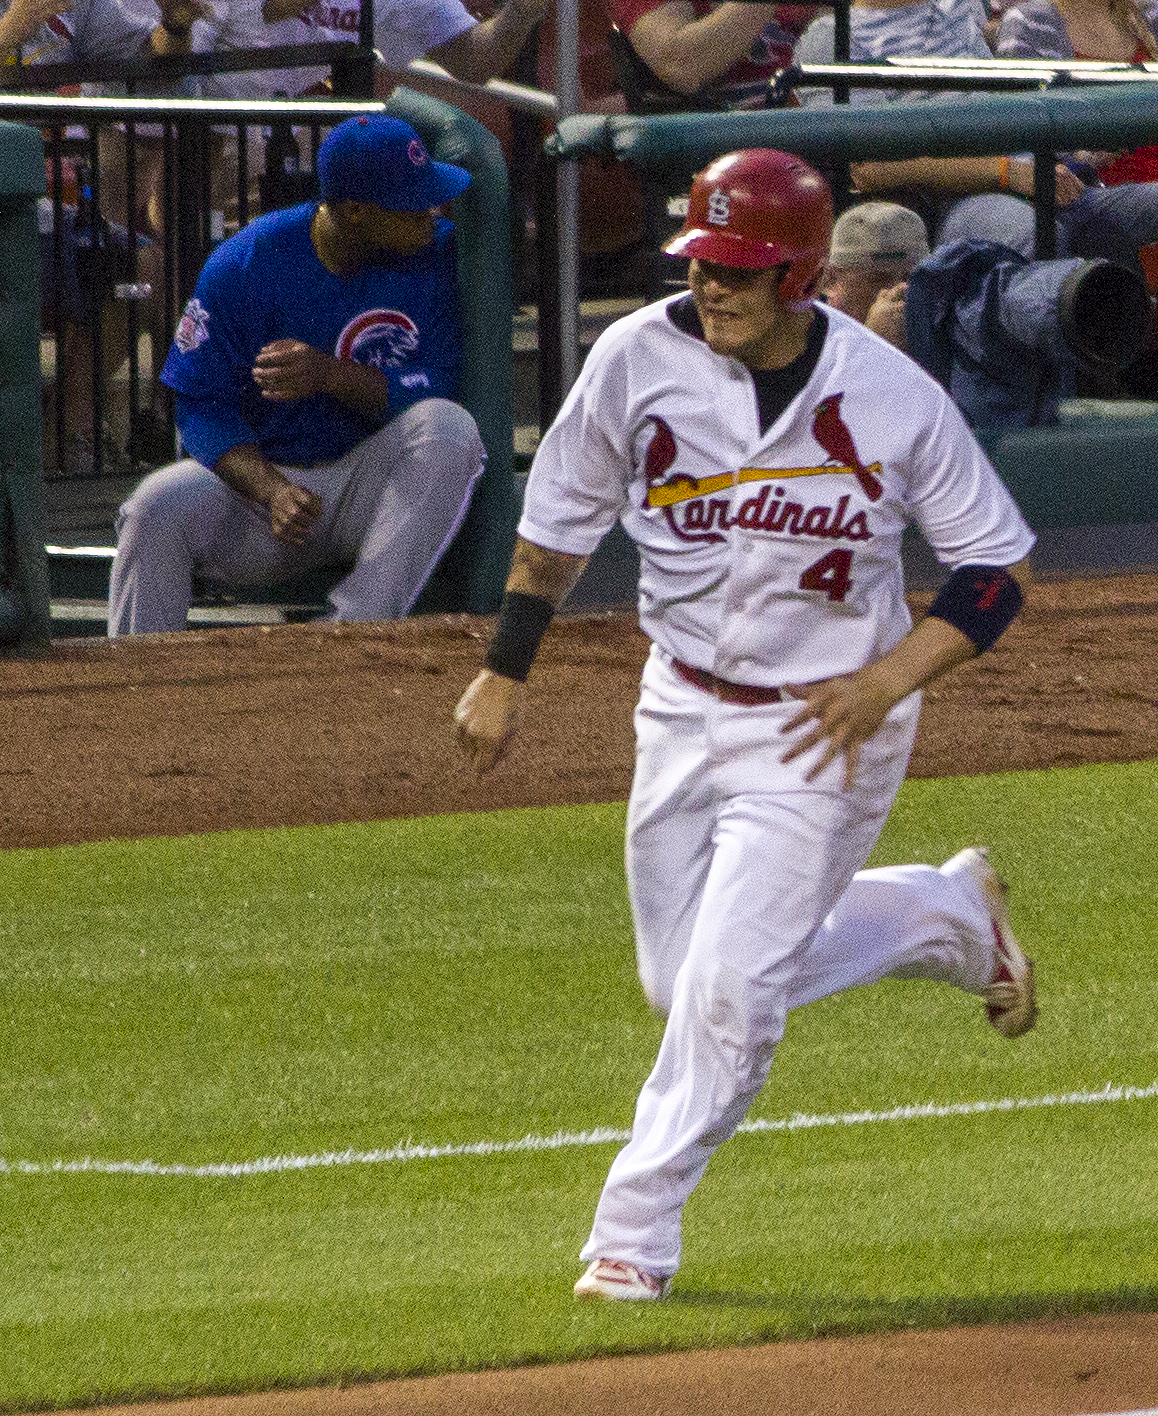 Molina rounds third, St. Louis, 2013